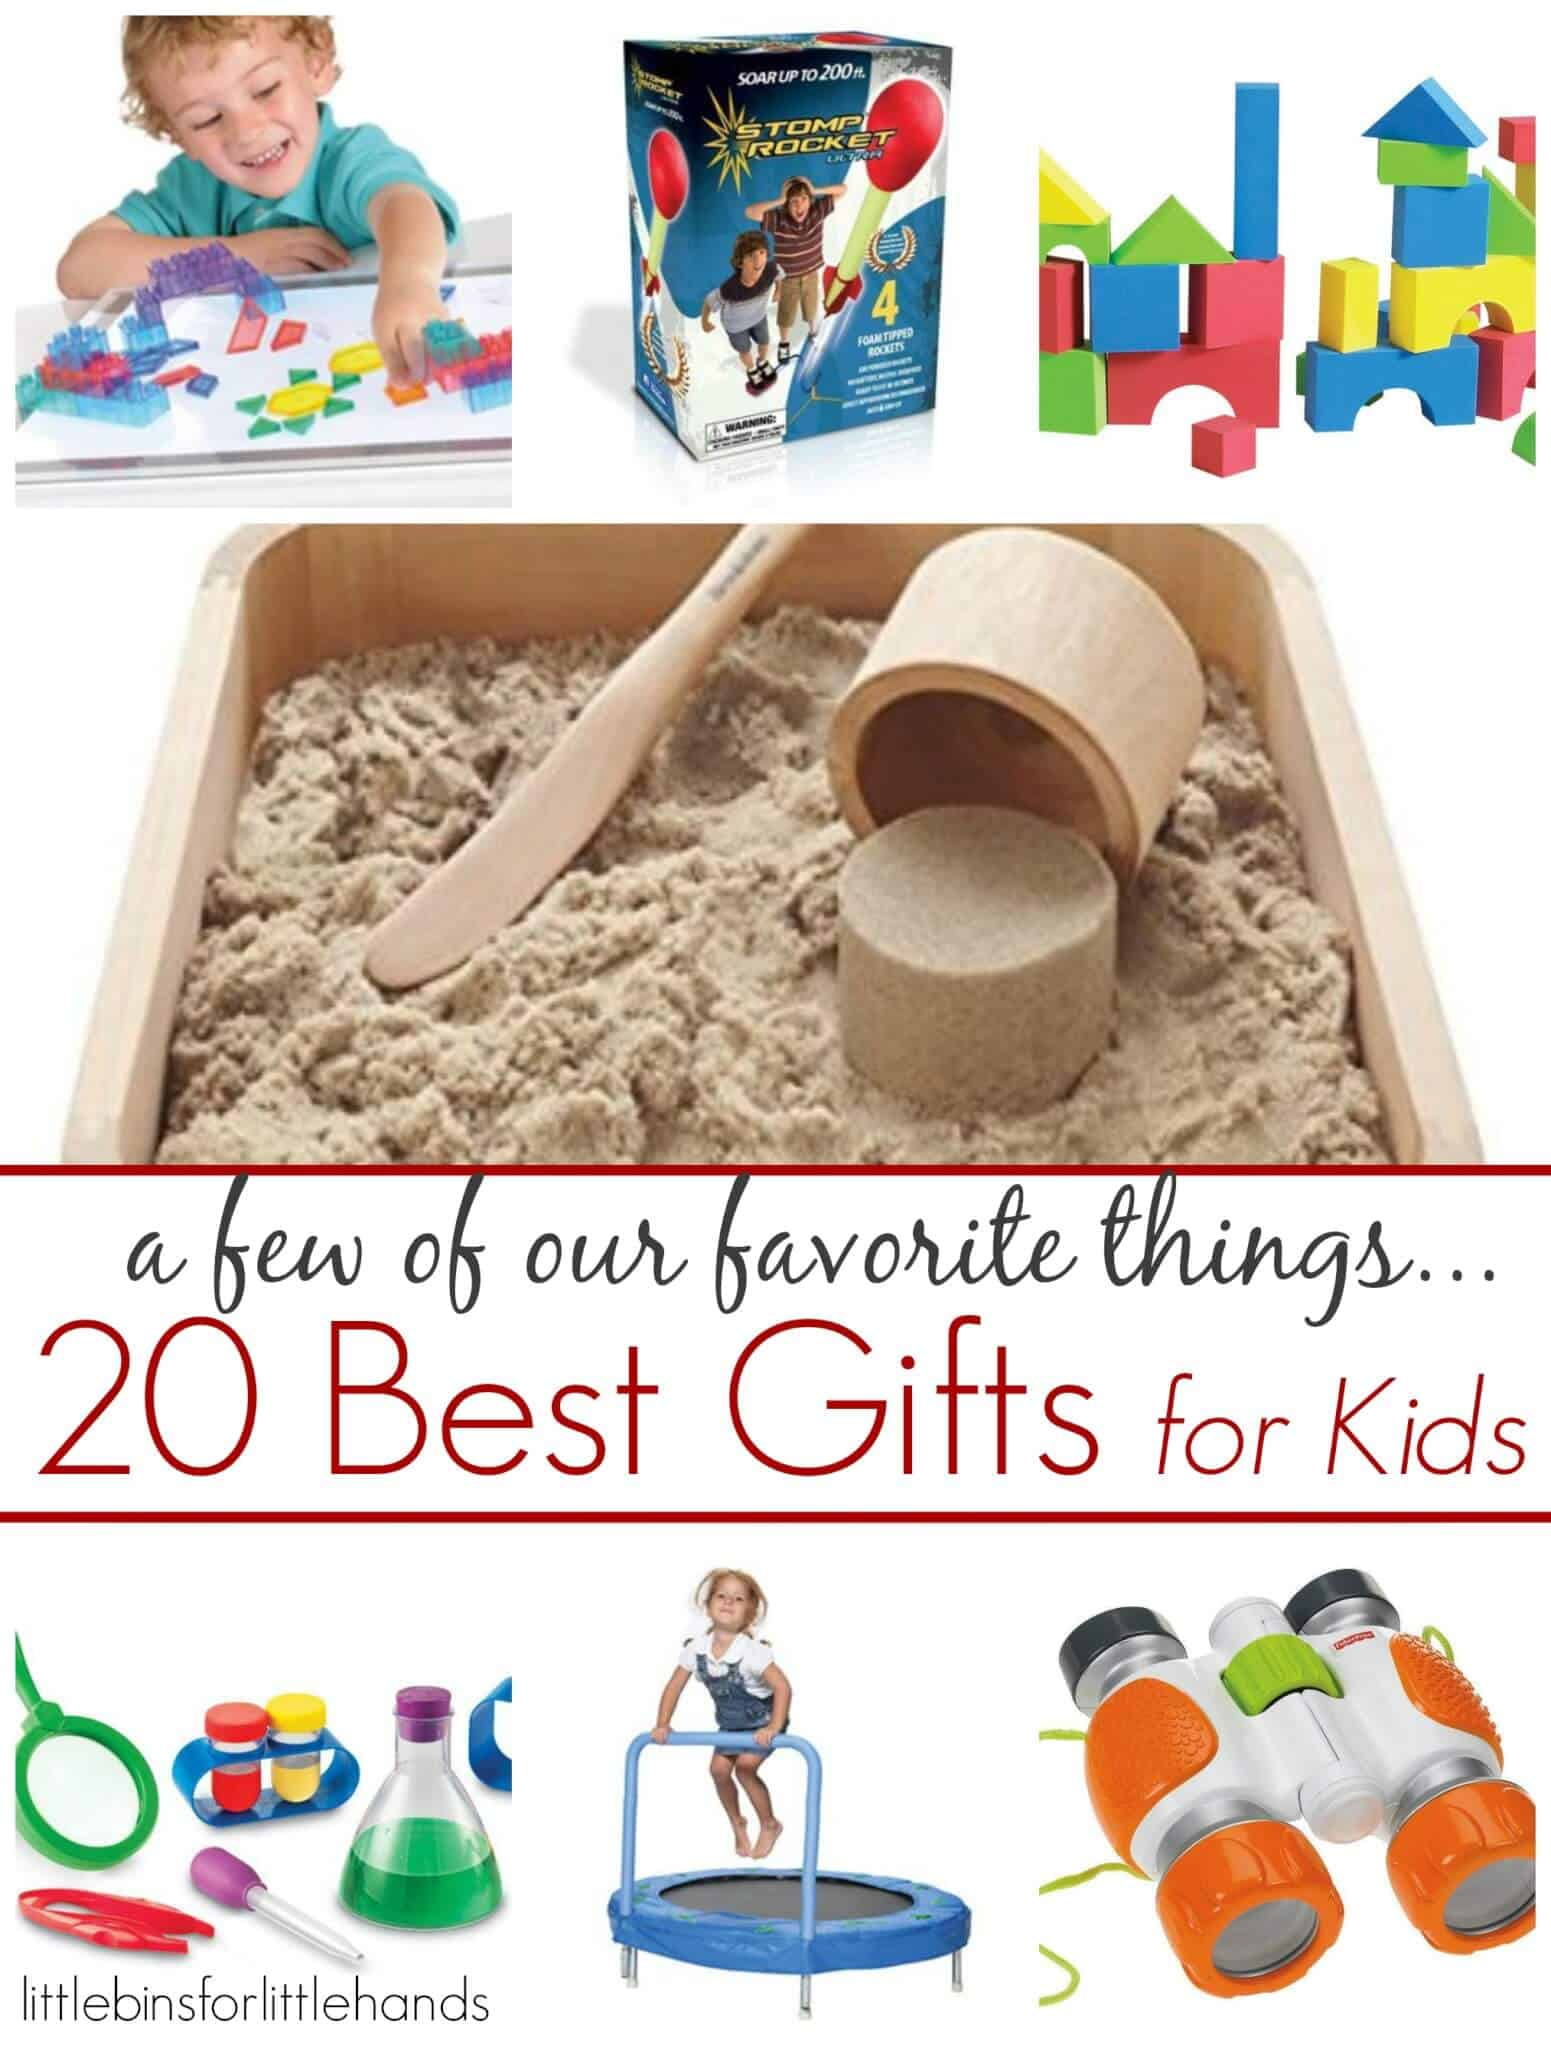 Top 10 Best Building Toys Tuesday Top 10 Holiday Lists